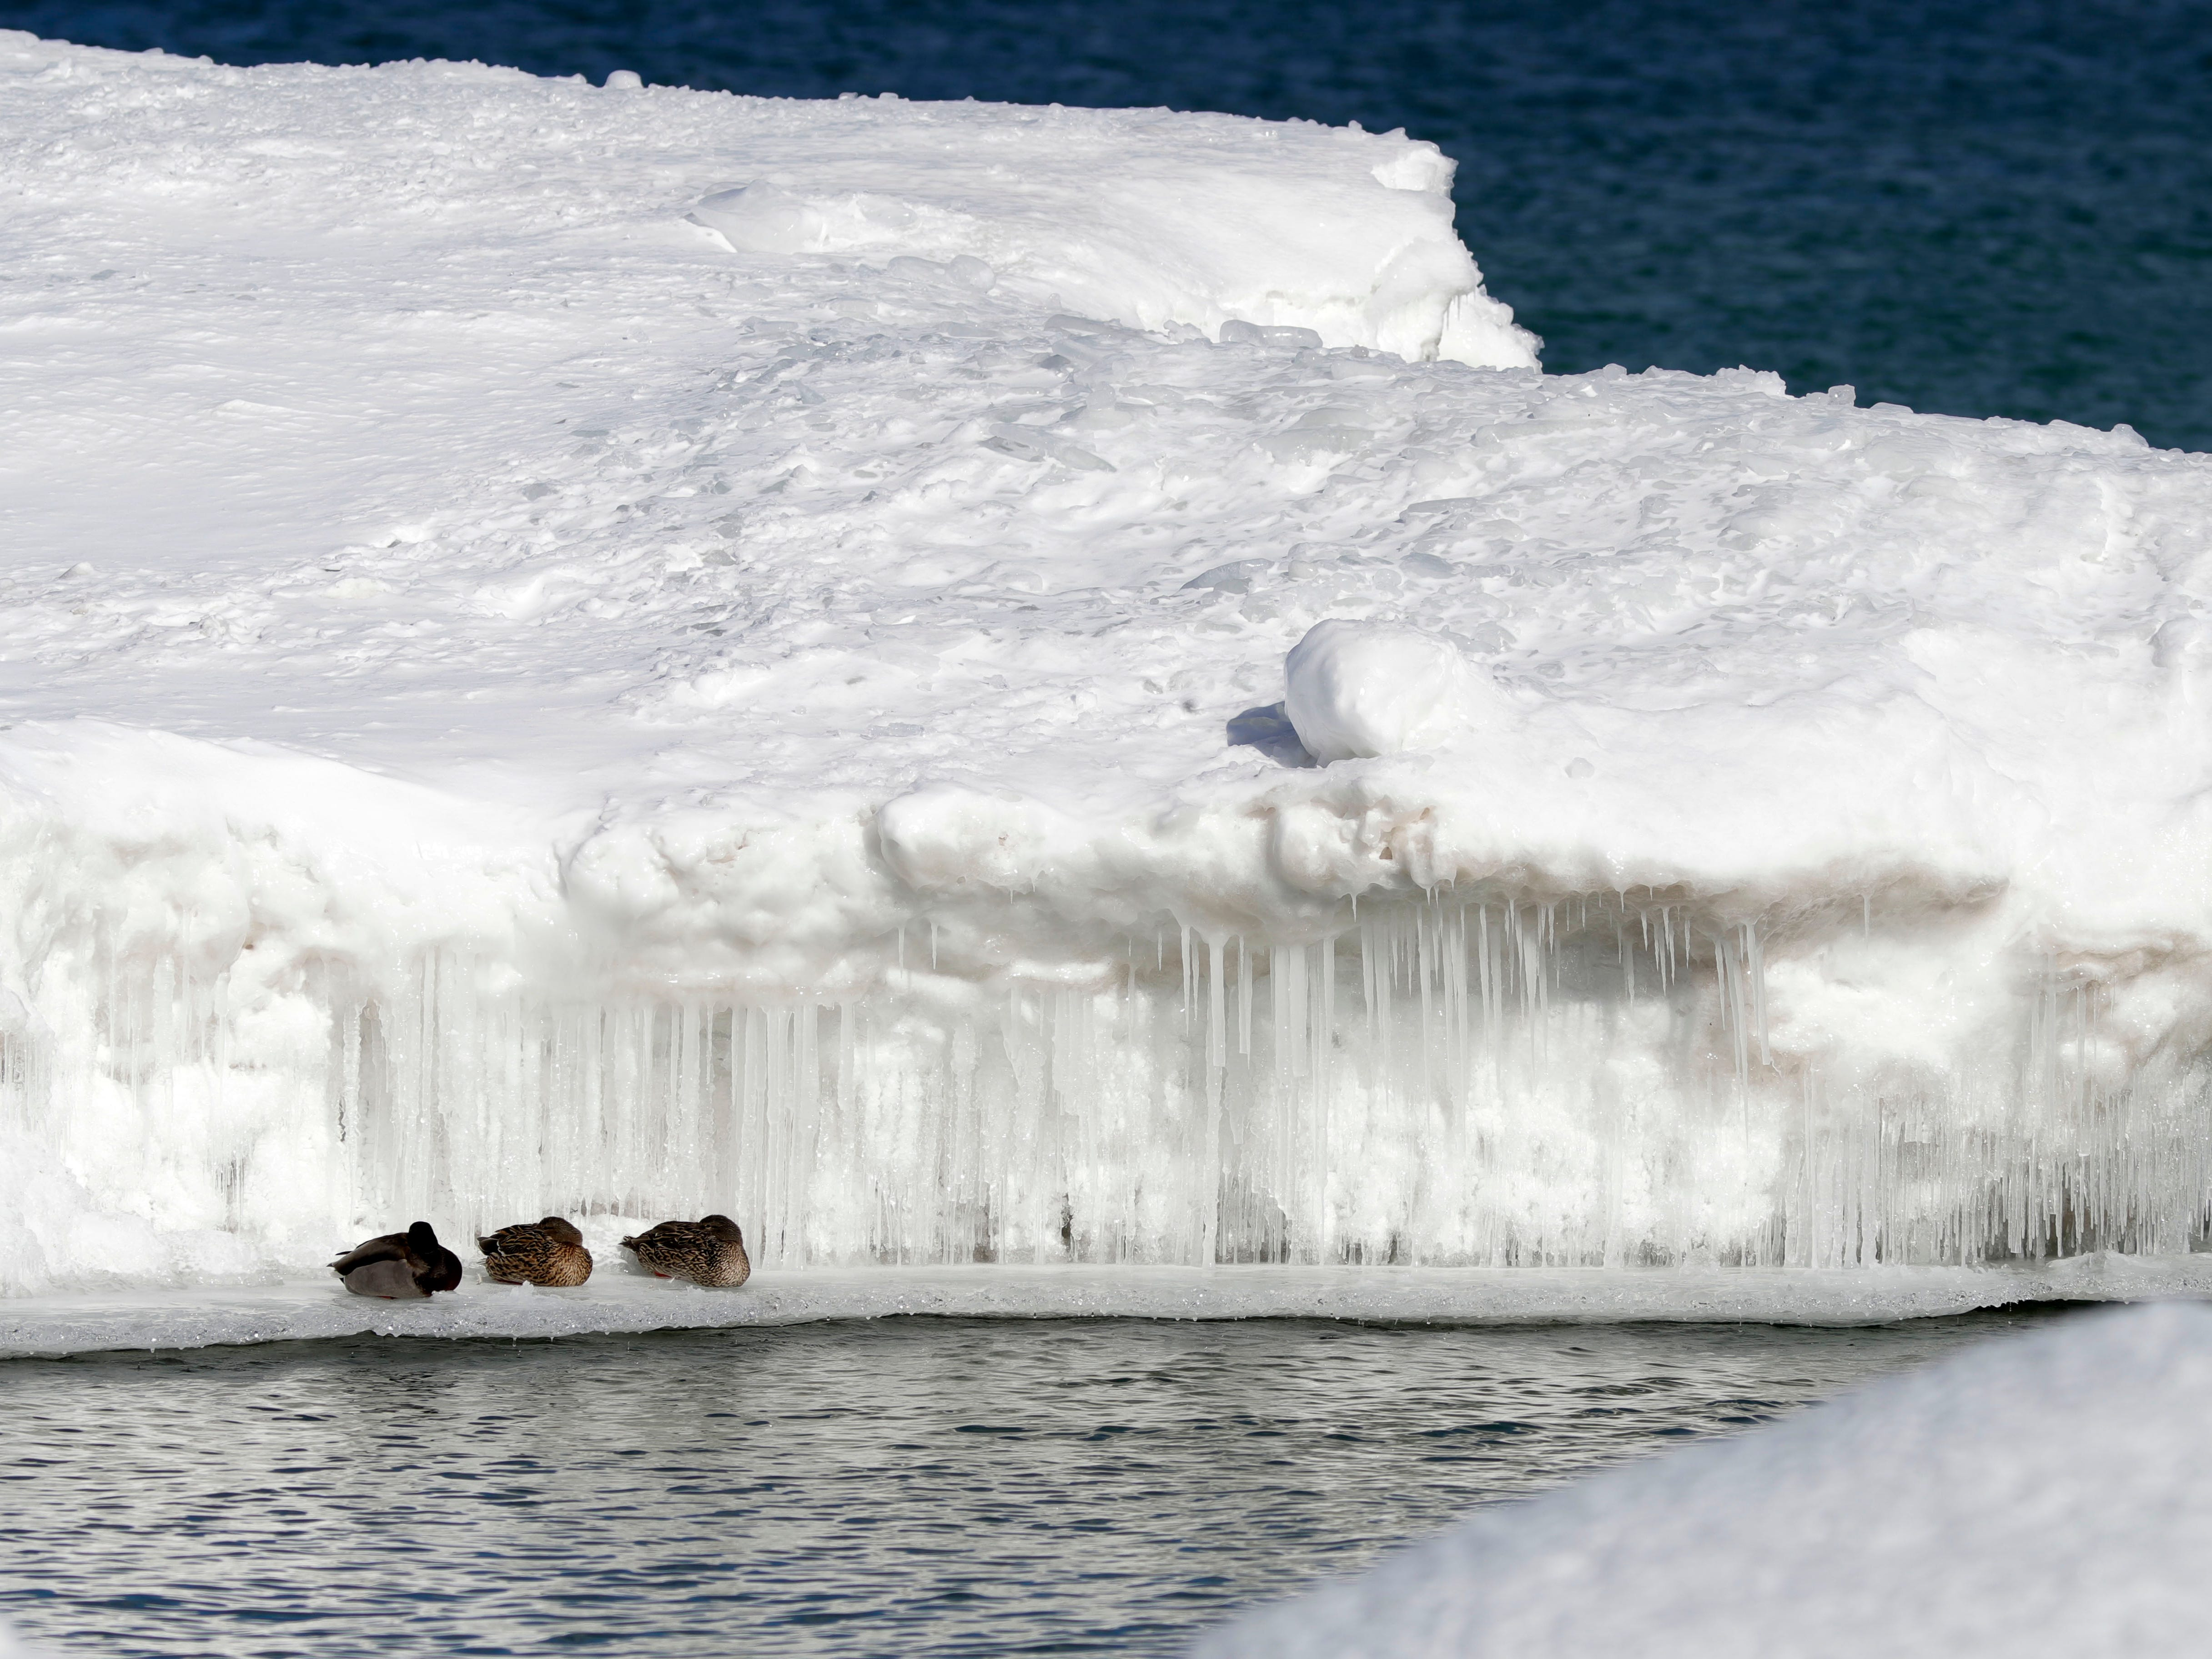 A trio of ducks rest on an icy shelf near a snow mound at Deland Park along Lake Michigan, Tuesday, March 5, 2019, in Sheboygan, Wis.